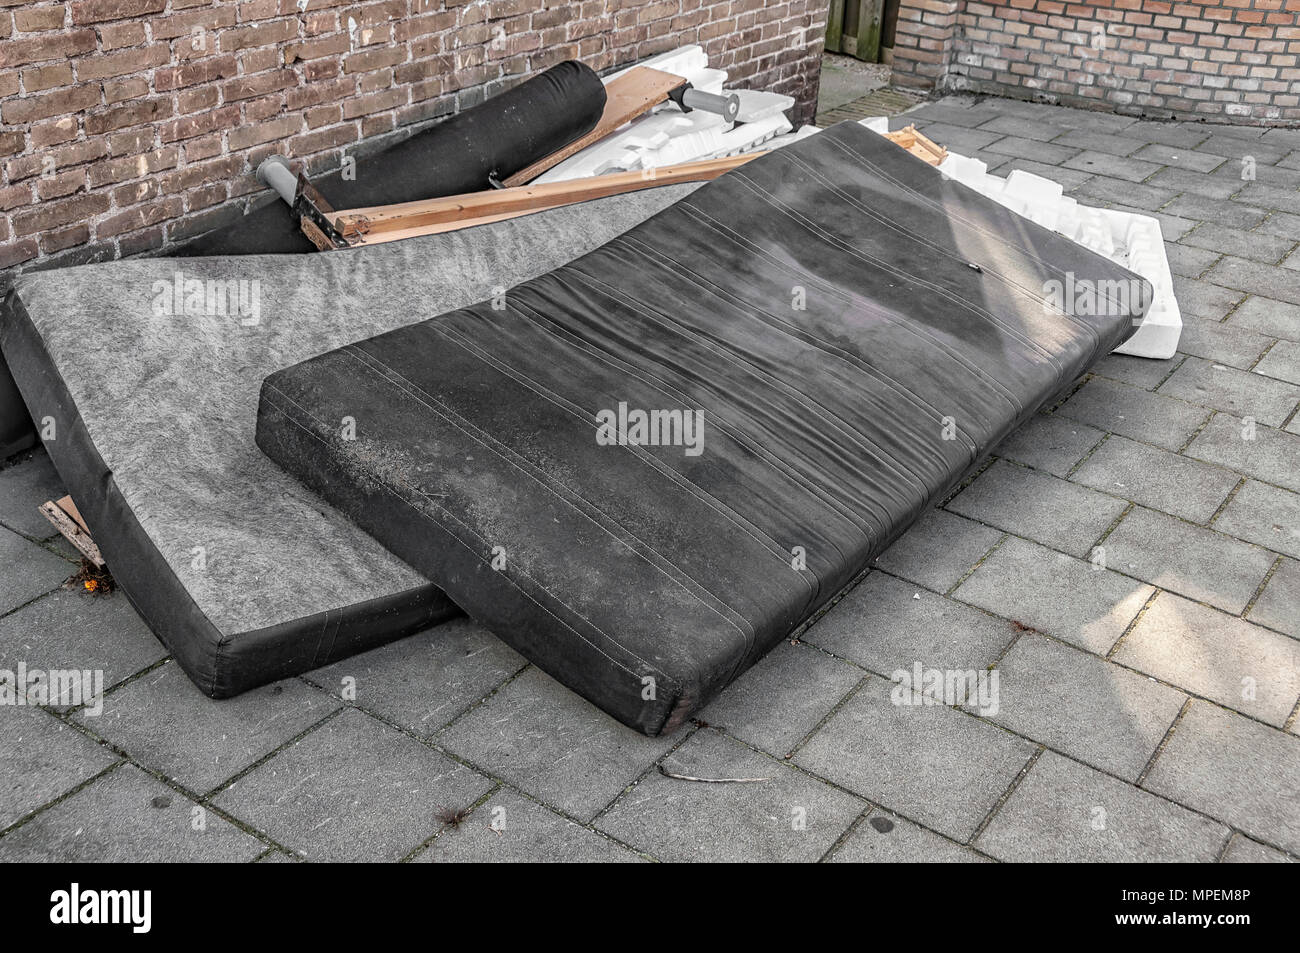 used mattresses dumped on the street - Stock Image